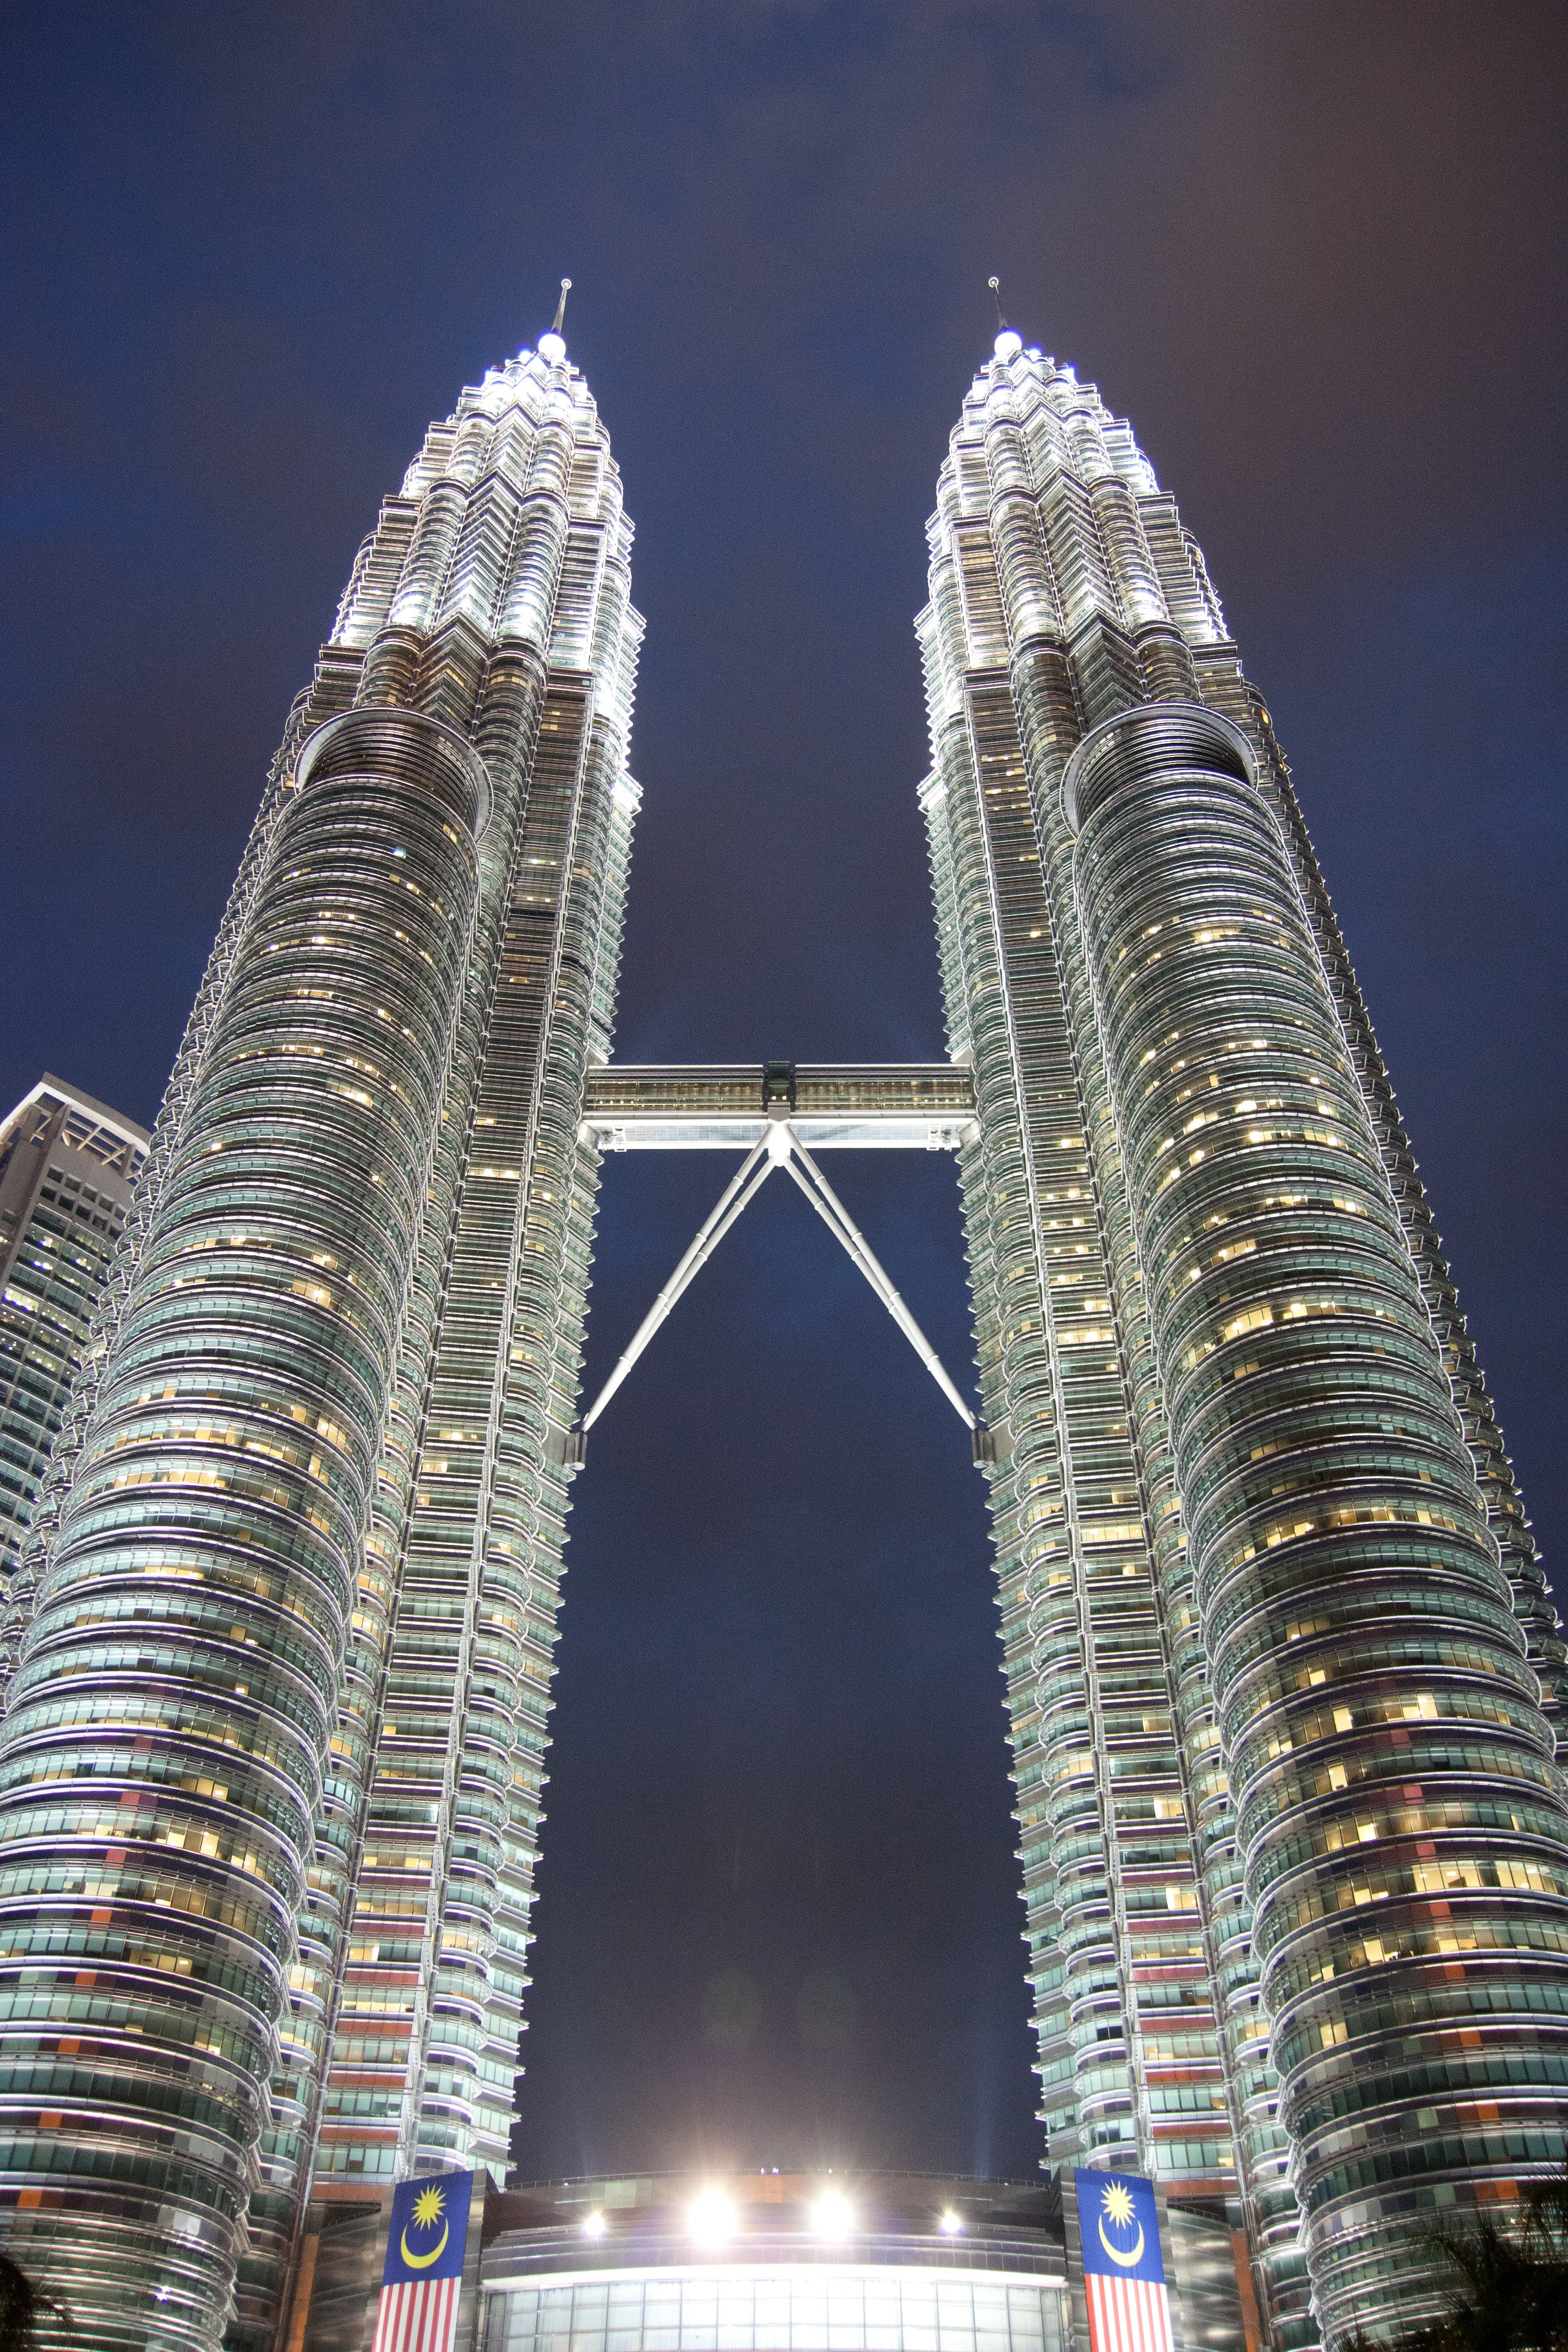 Low Angle Photography of Petronas Tower in Malaysia